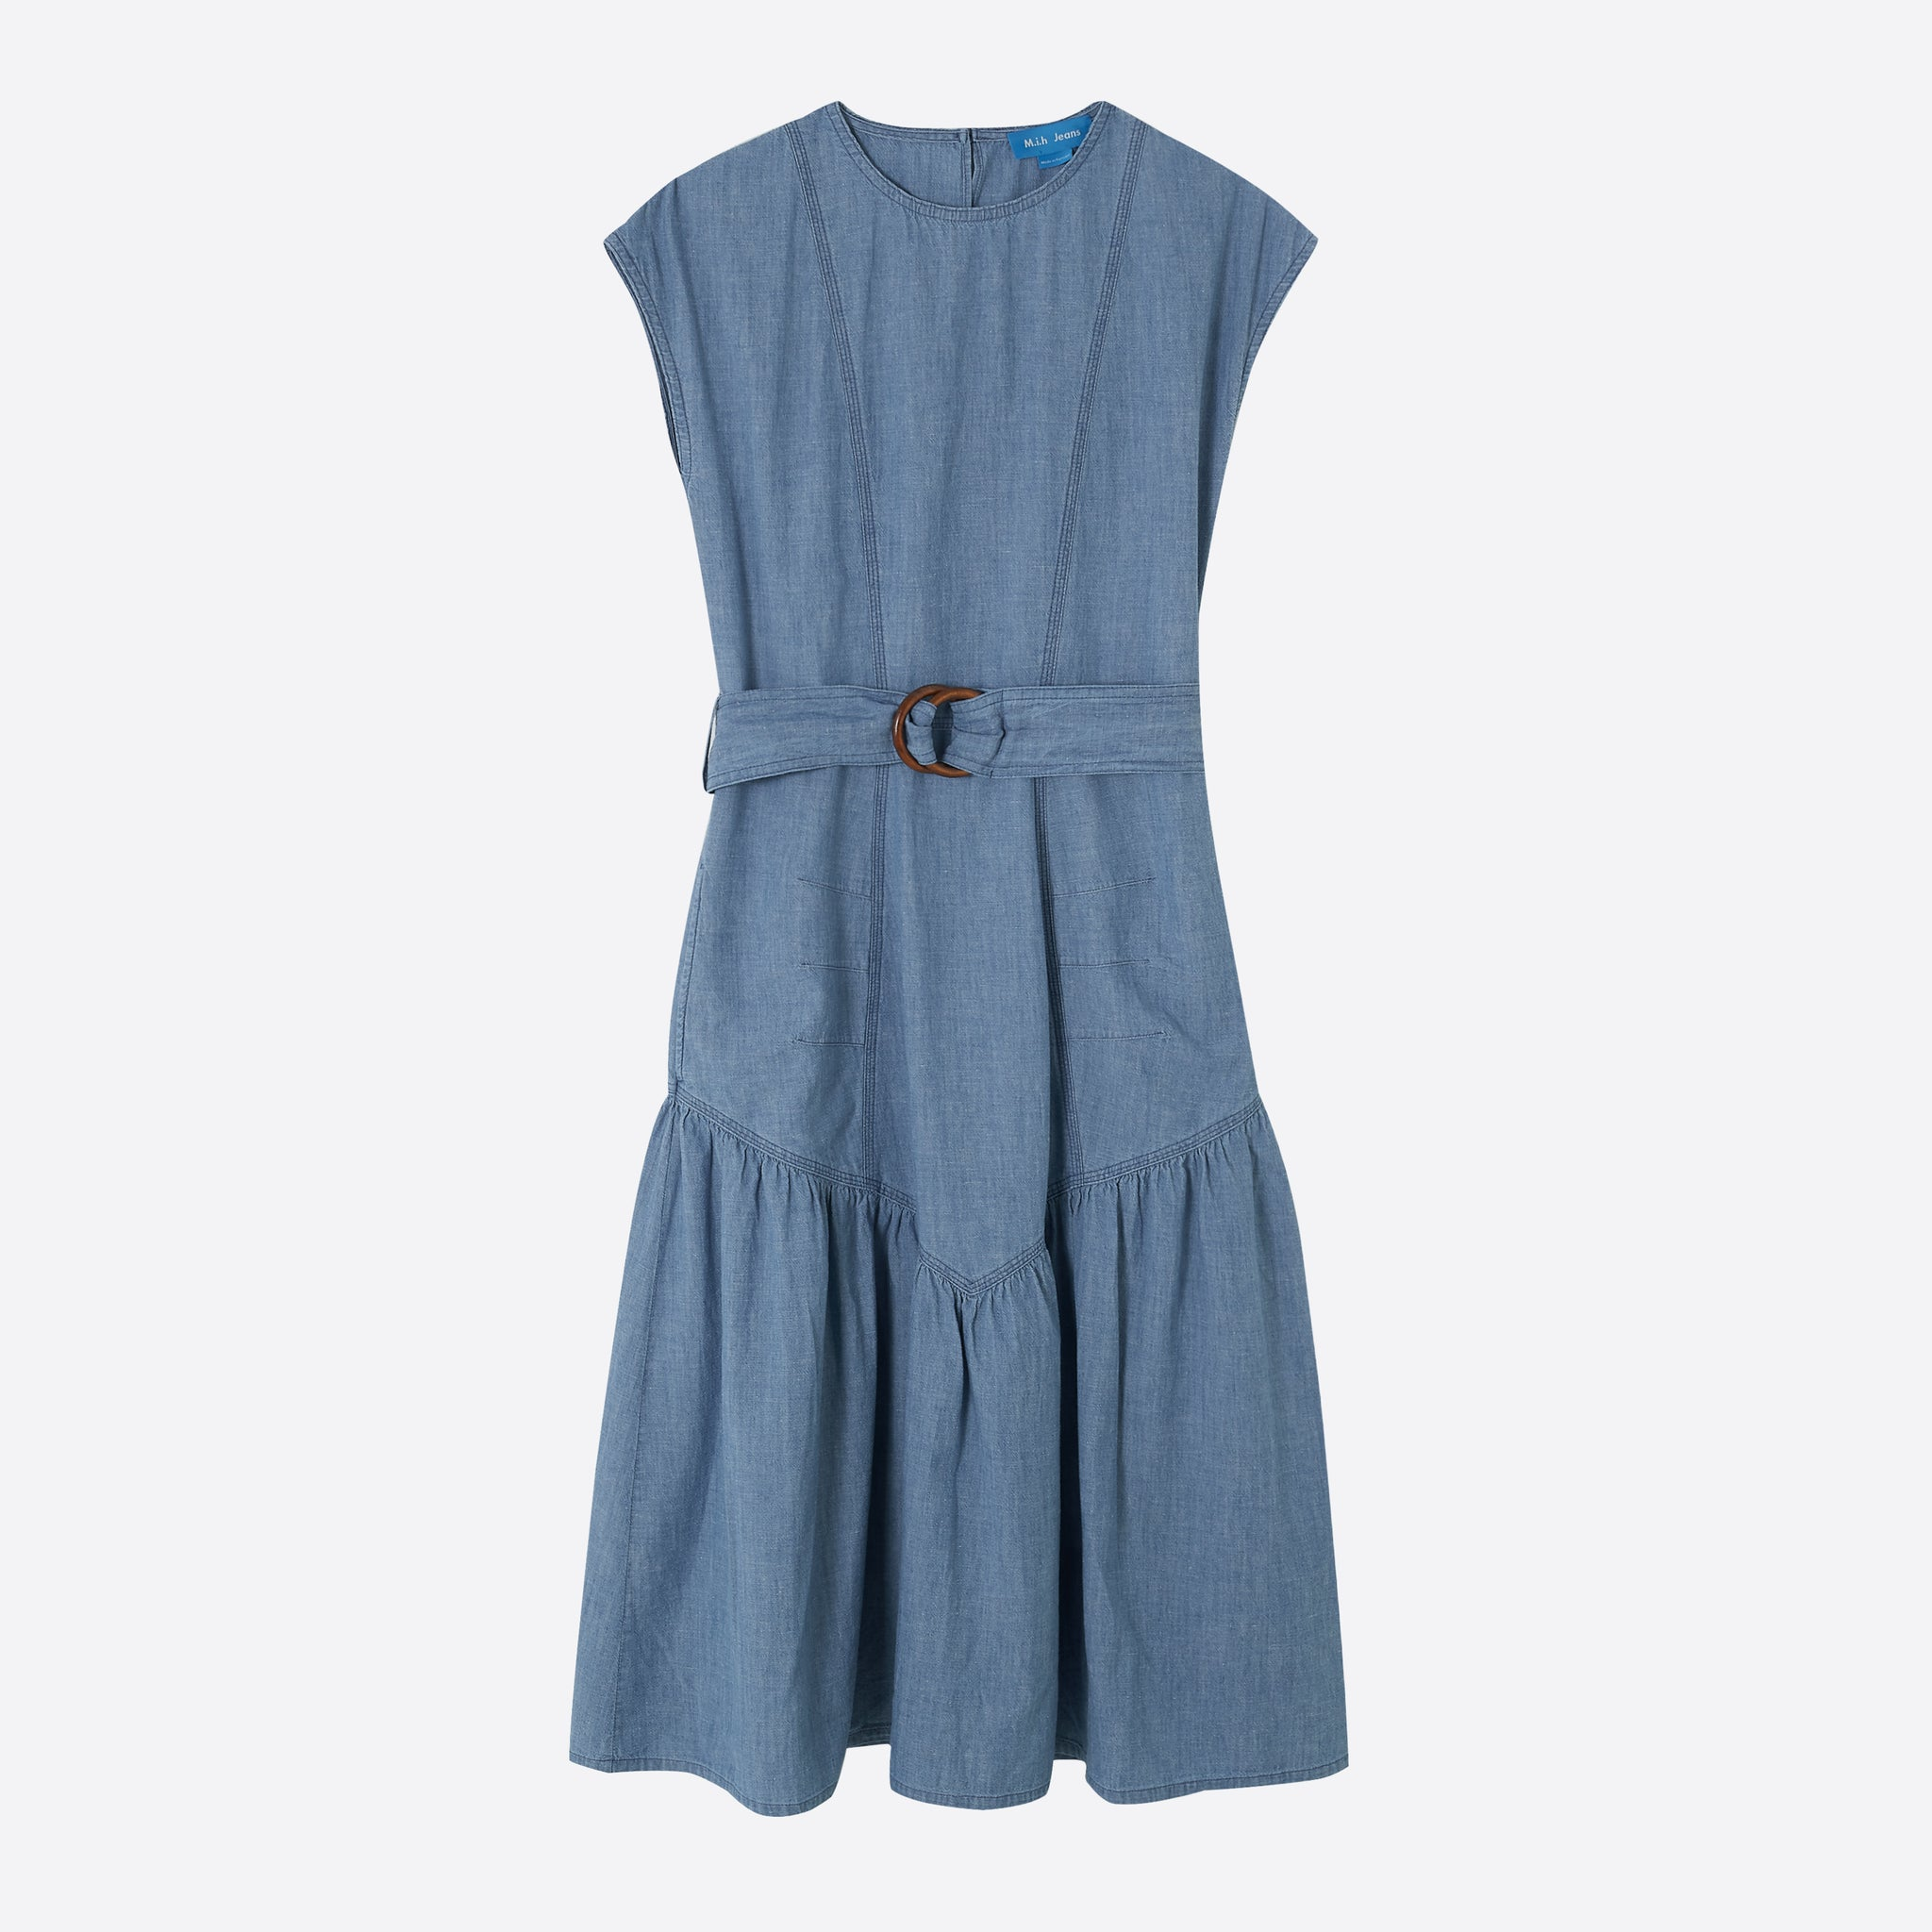 M.i.h Jeans Aubrey Dress in Indigo Chambray